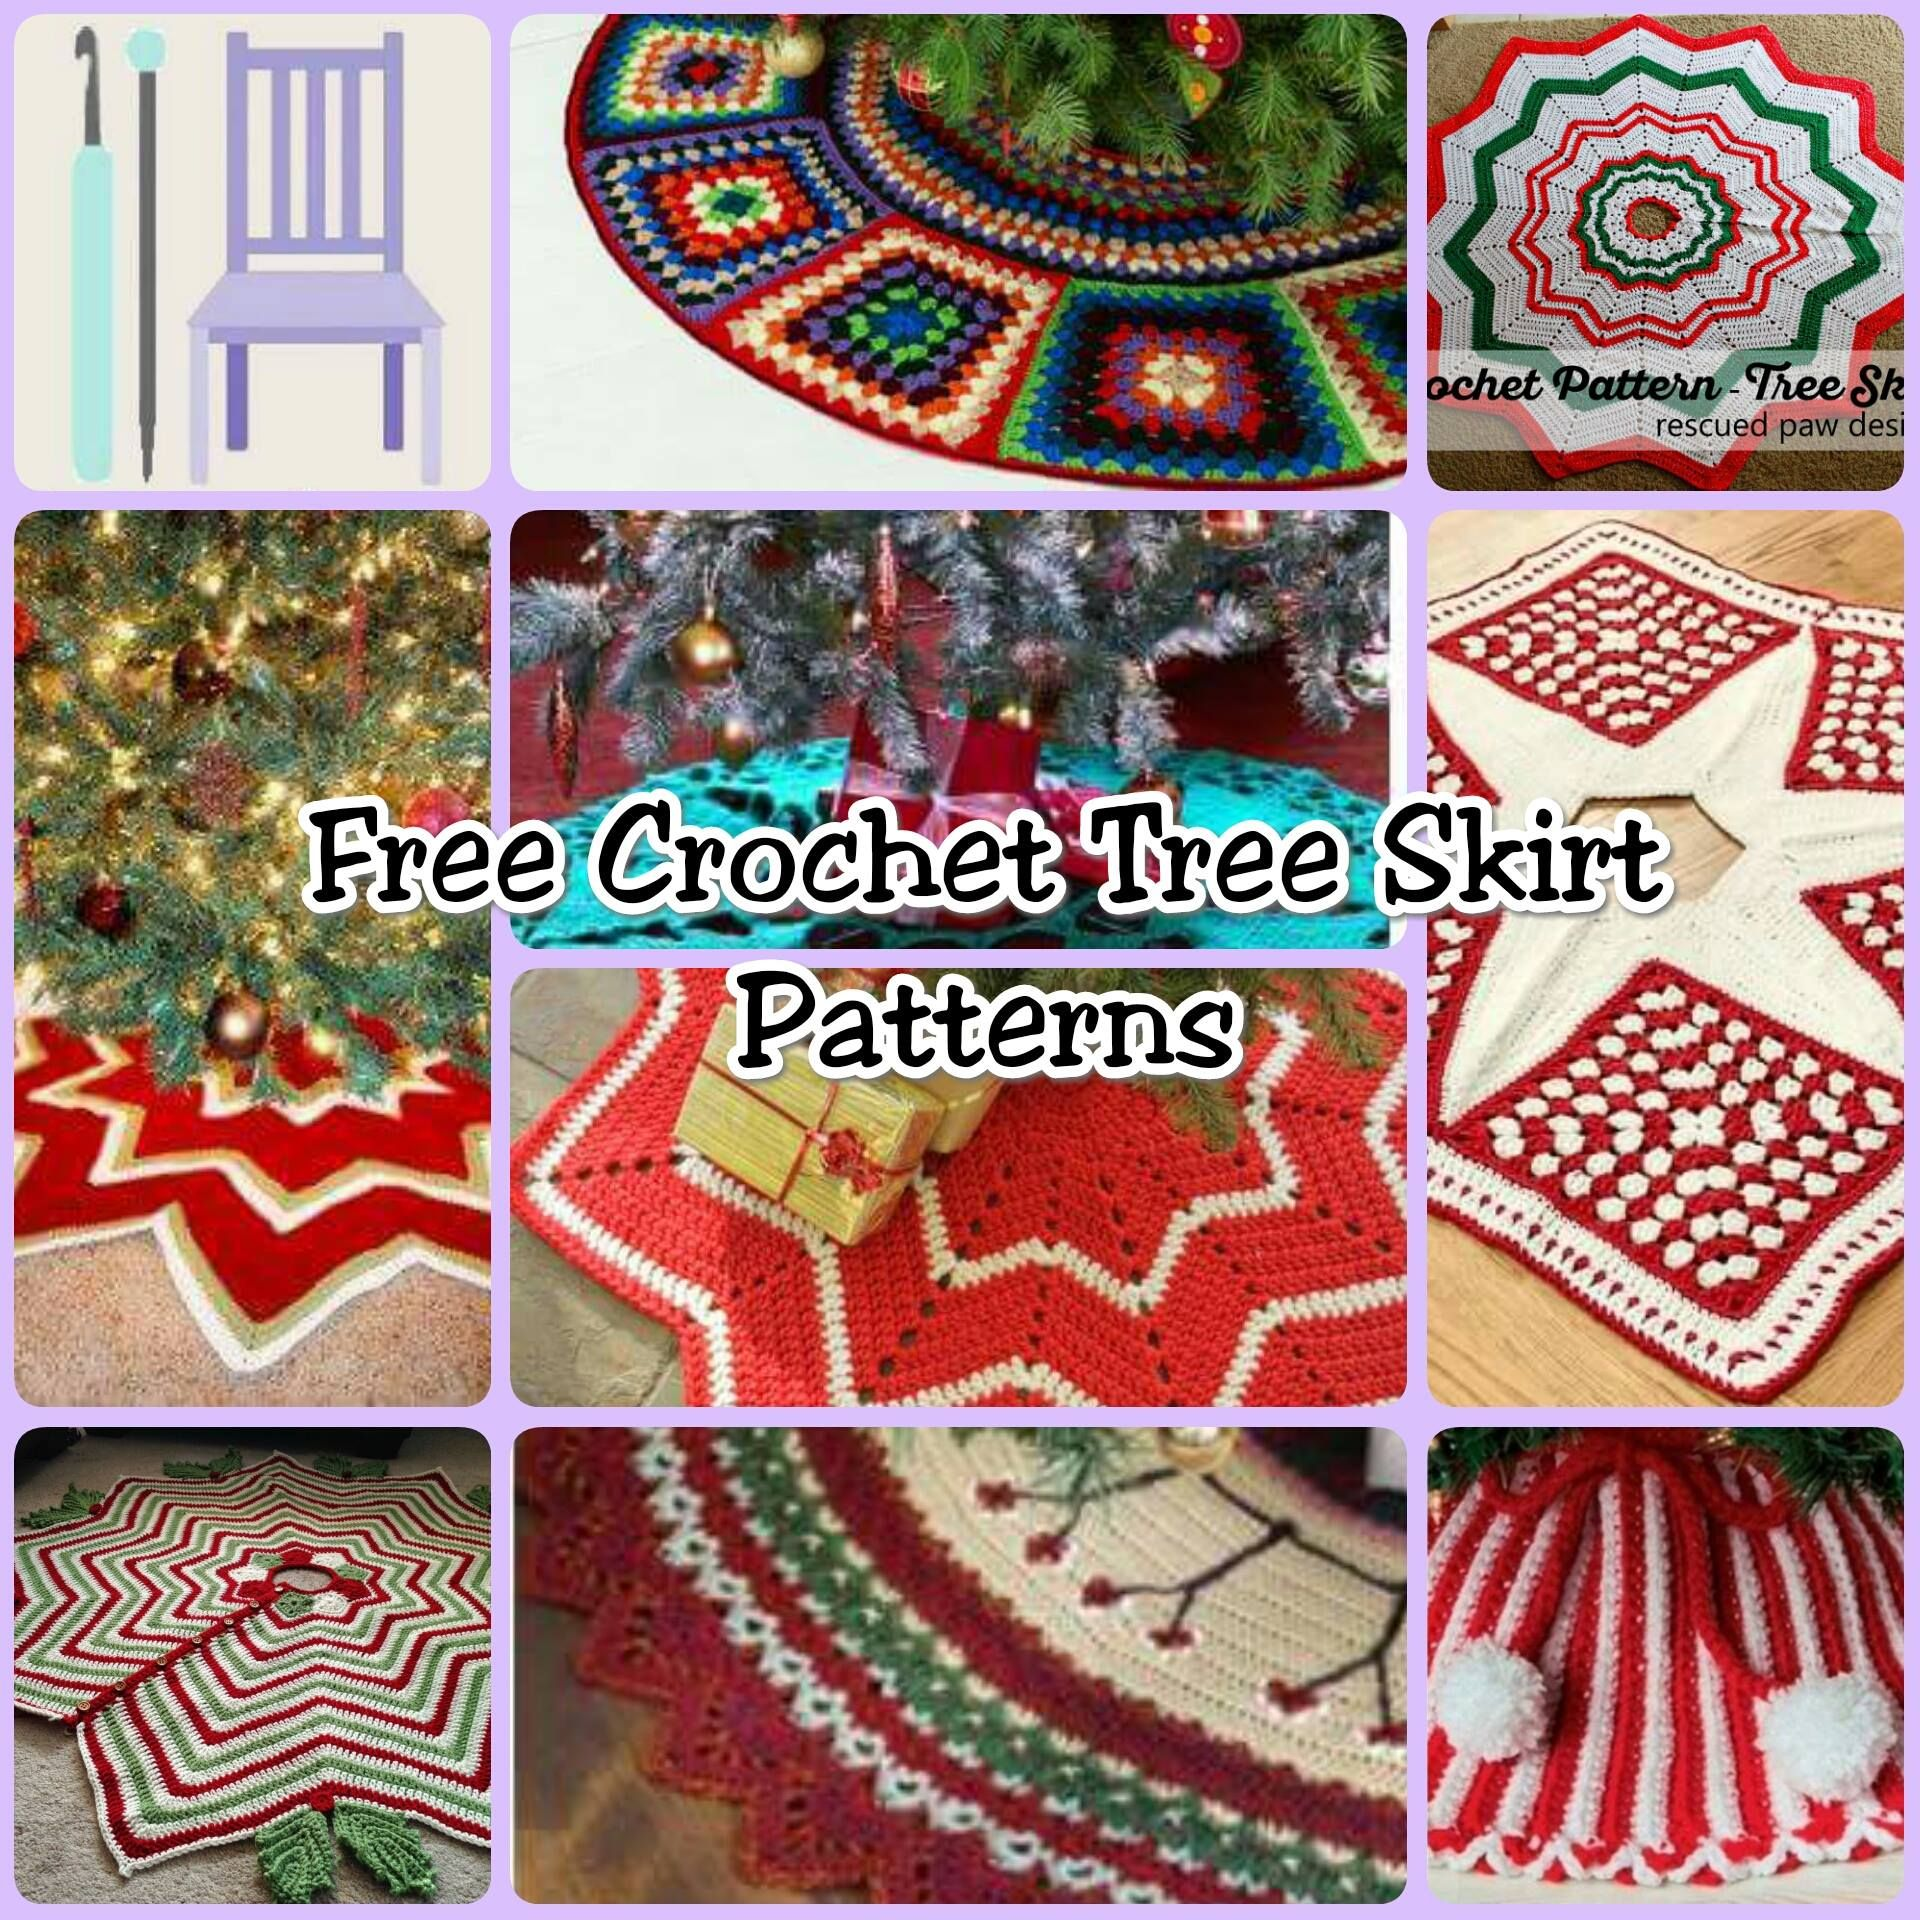 Free crochet tree skirt patterns the lavender chair my hobby free crochet tree skirt patterns the lavender chair bankloansurffo Choice Image